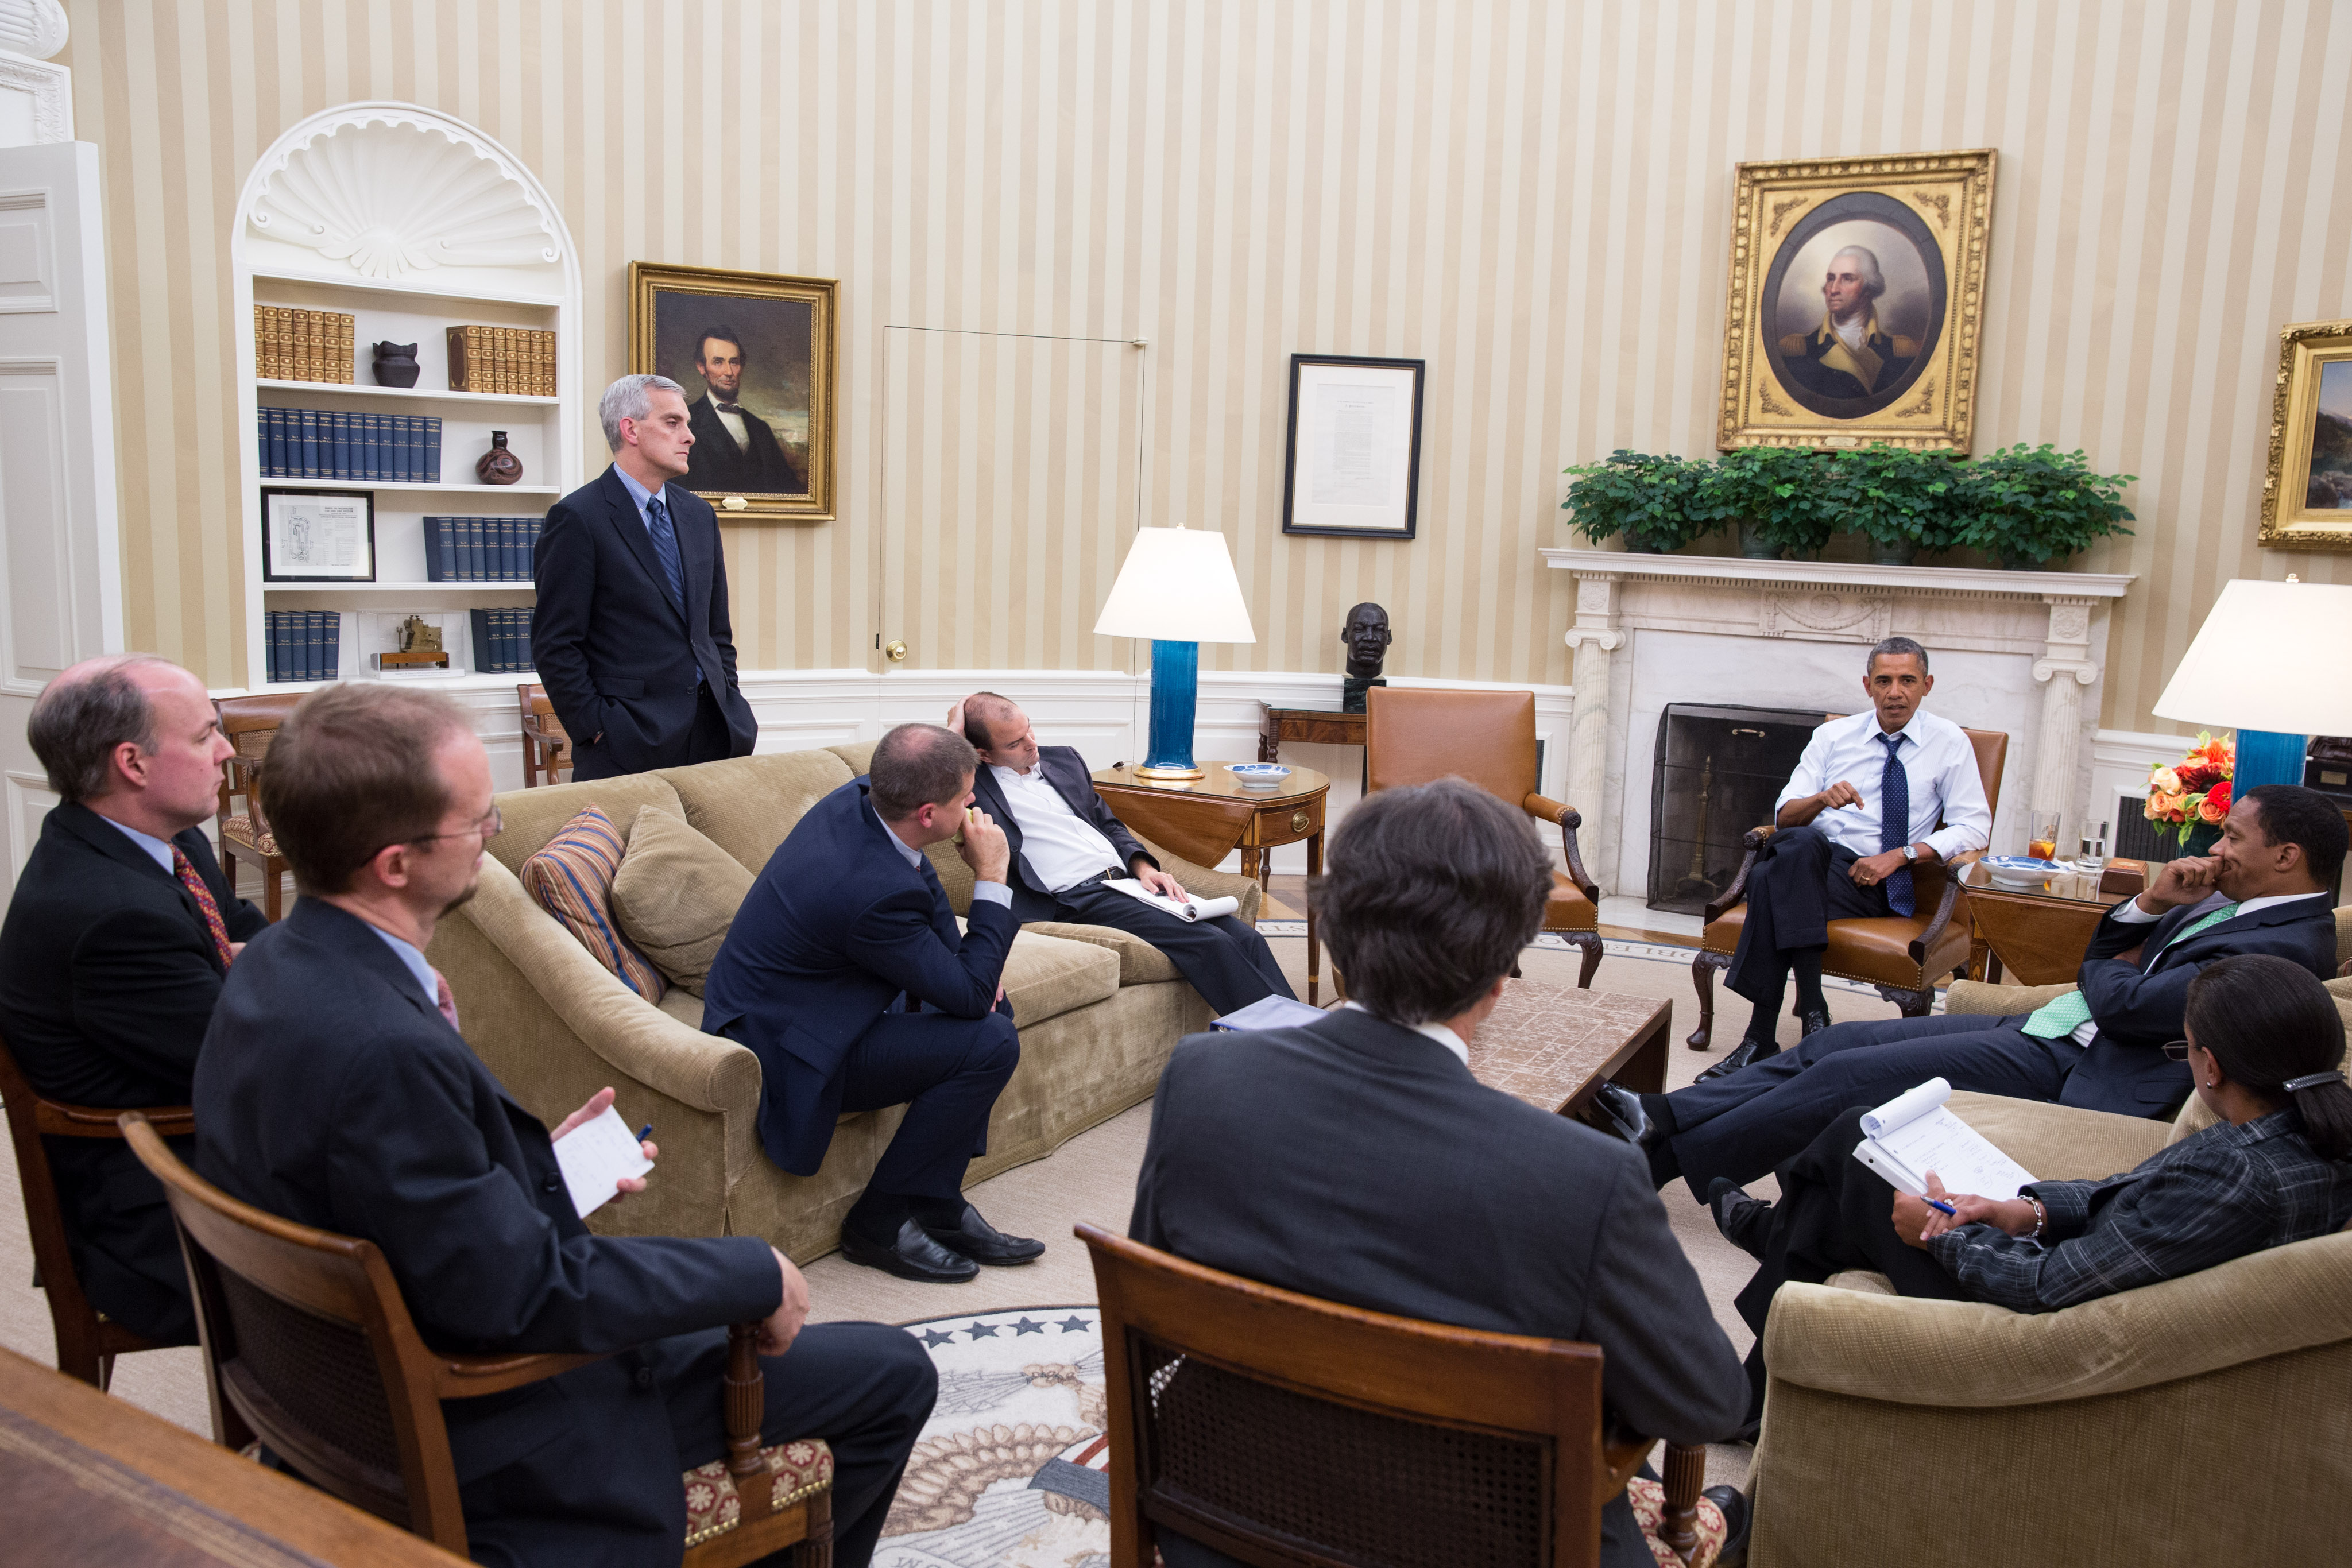 President Barack Obama meets with senior advisors in the Oval Office to discuss a new plan for the situation in Syria, Friday night, August 30, 2013. (Official White House Photo by Pete Souza)